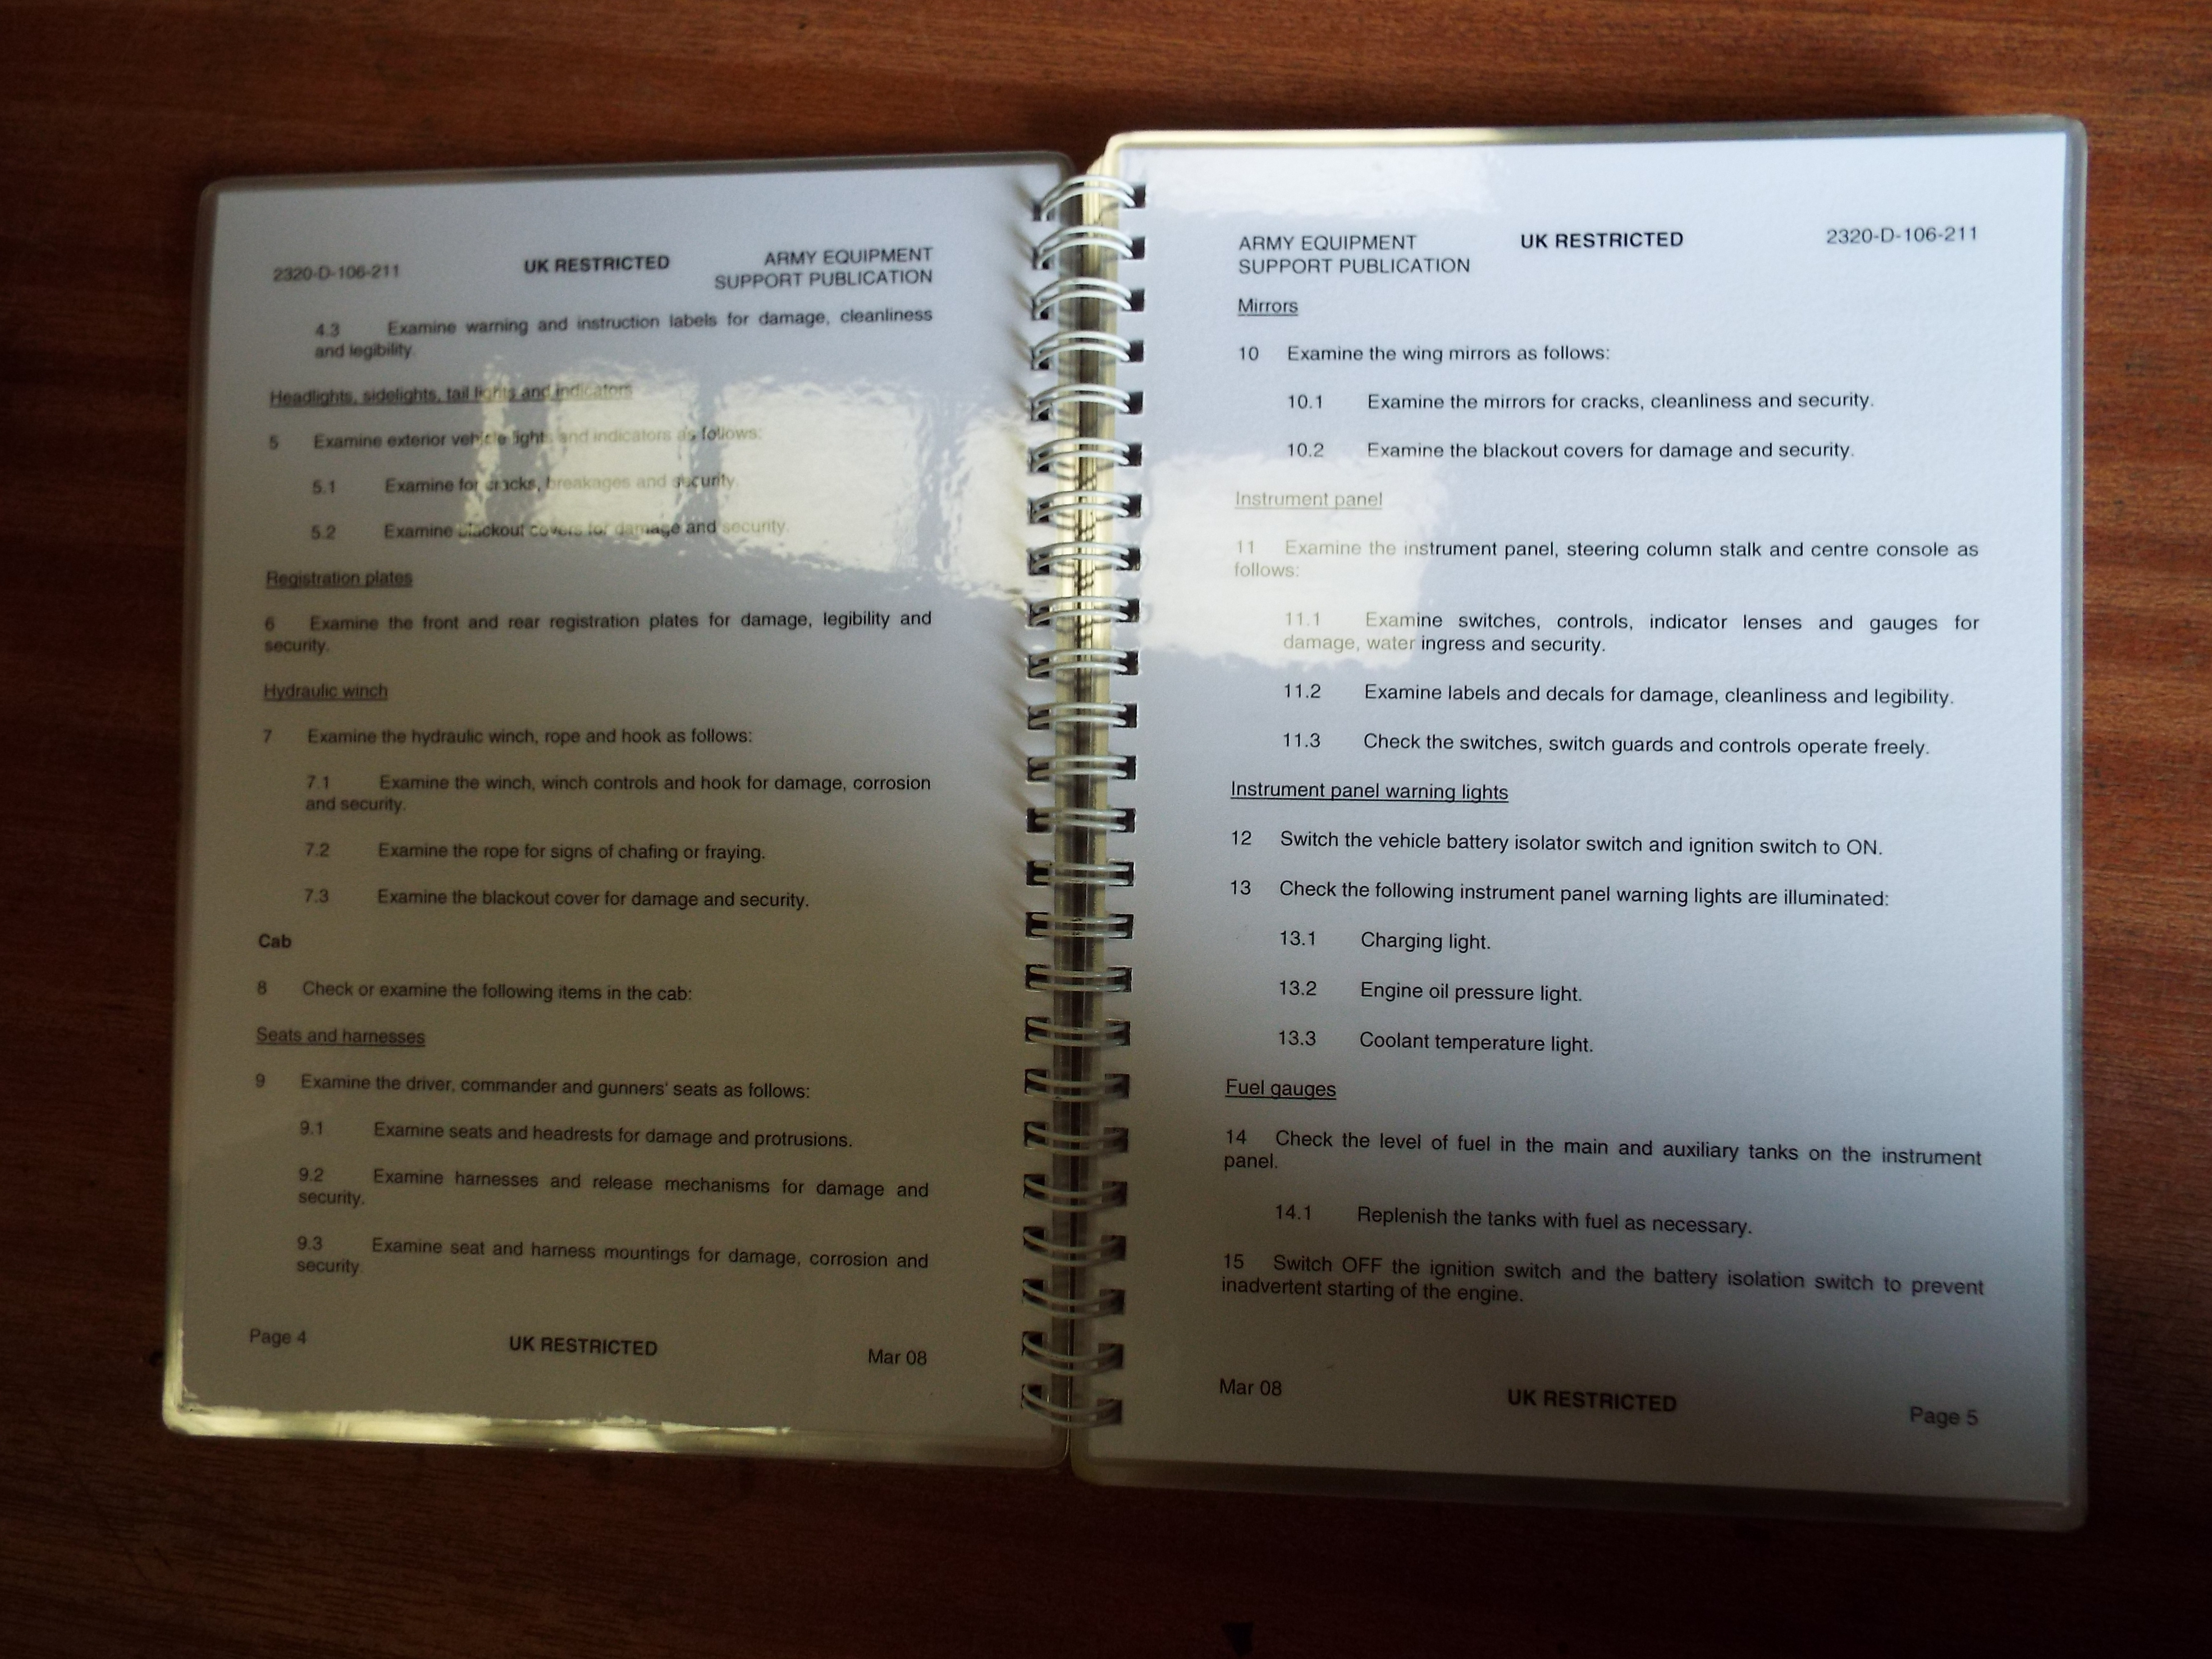 defence pay and conditions manual